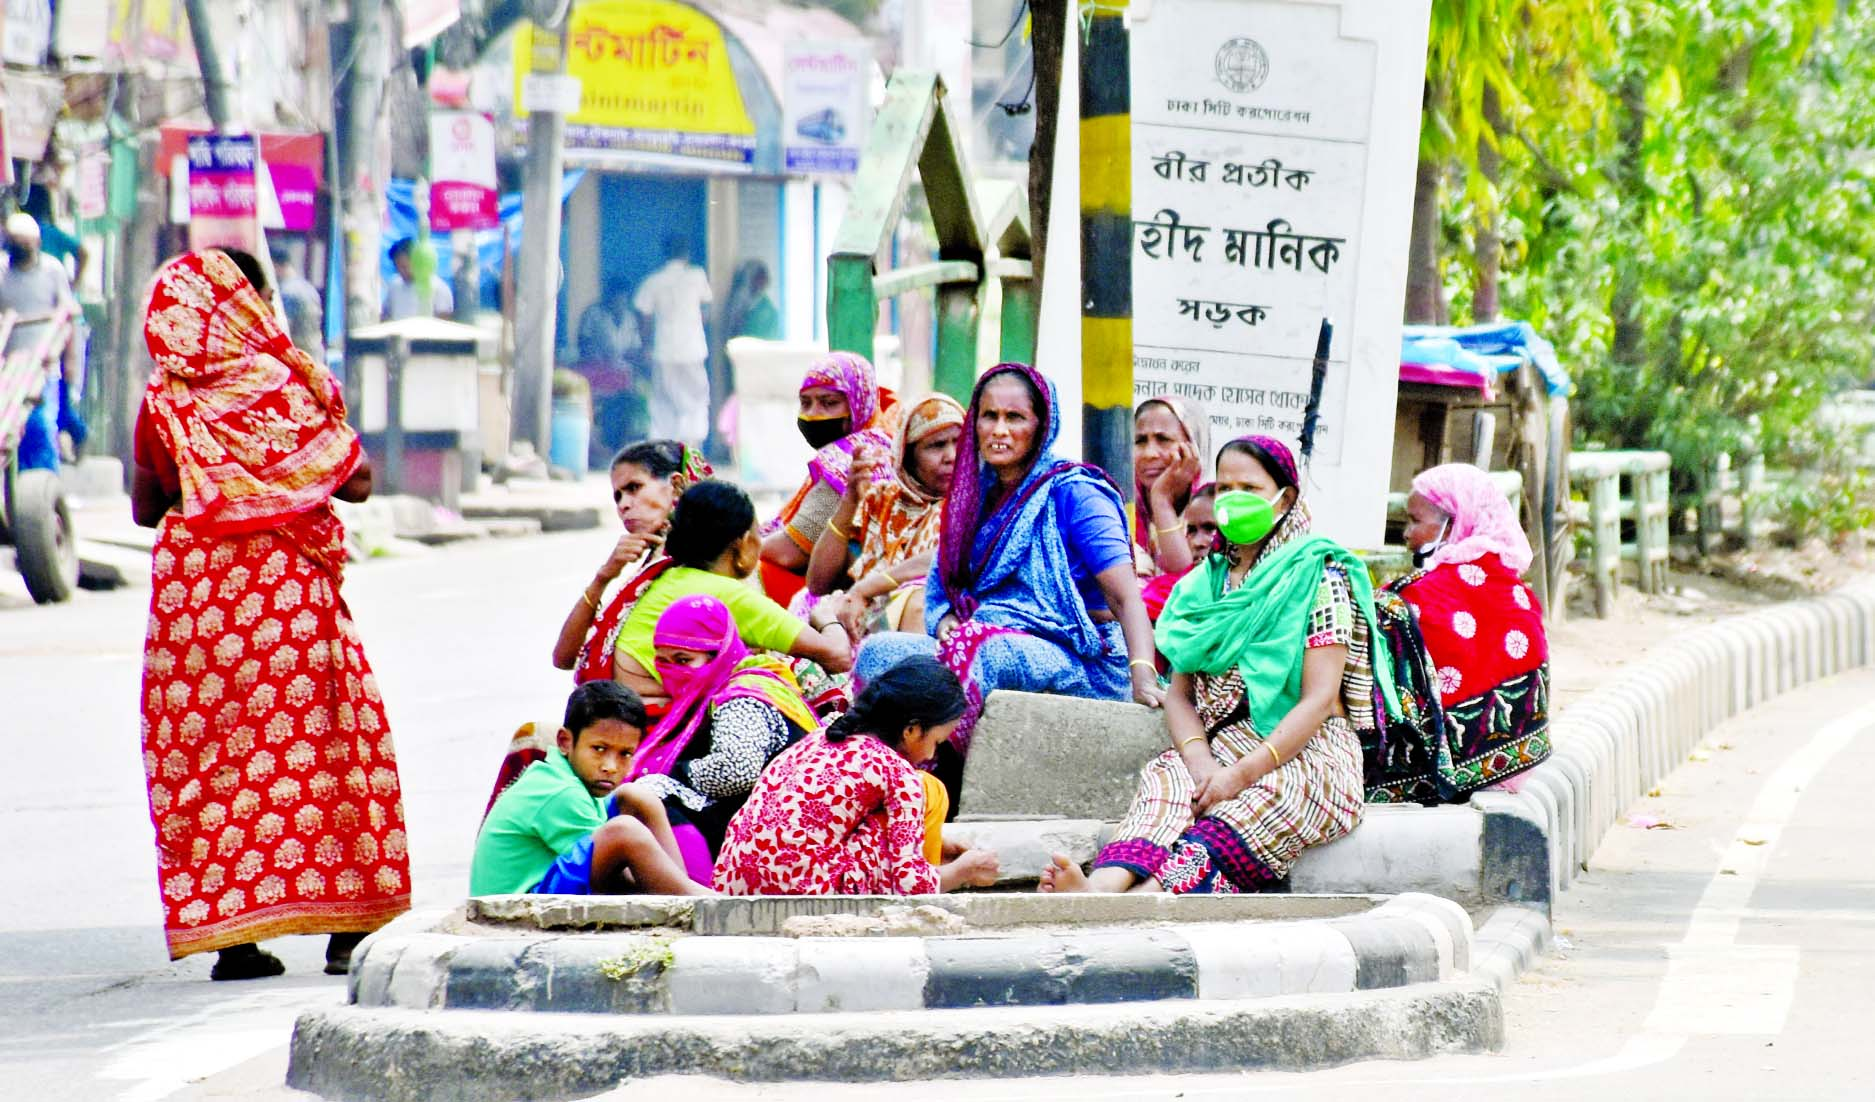 HUNGRY FACES CONTINUES TO GROW: Destitute women gather on a road divider in the capital